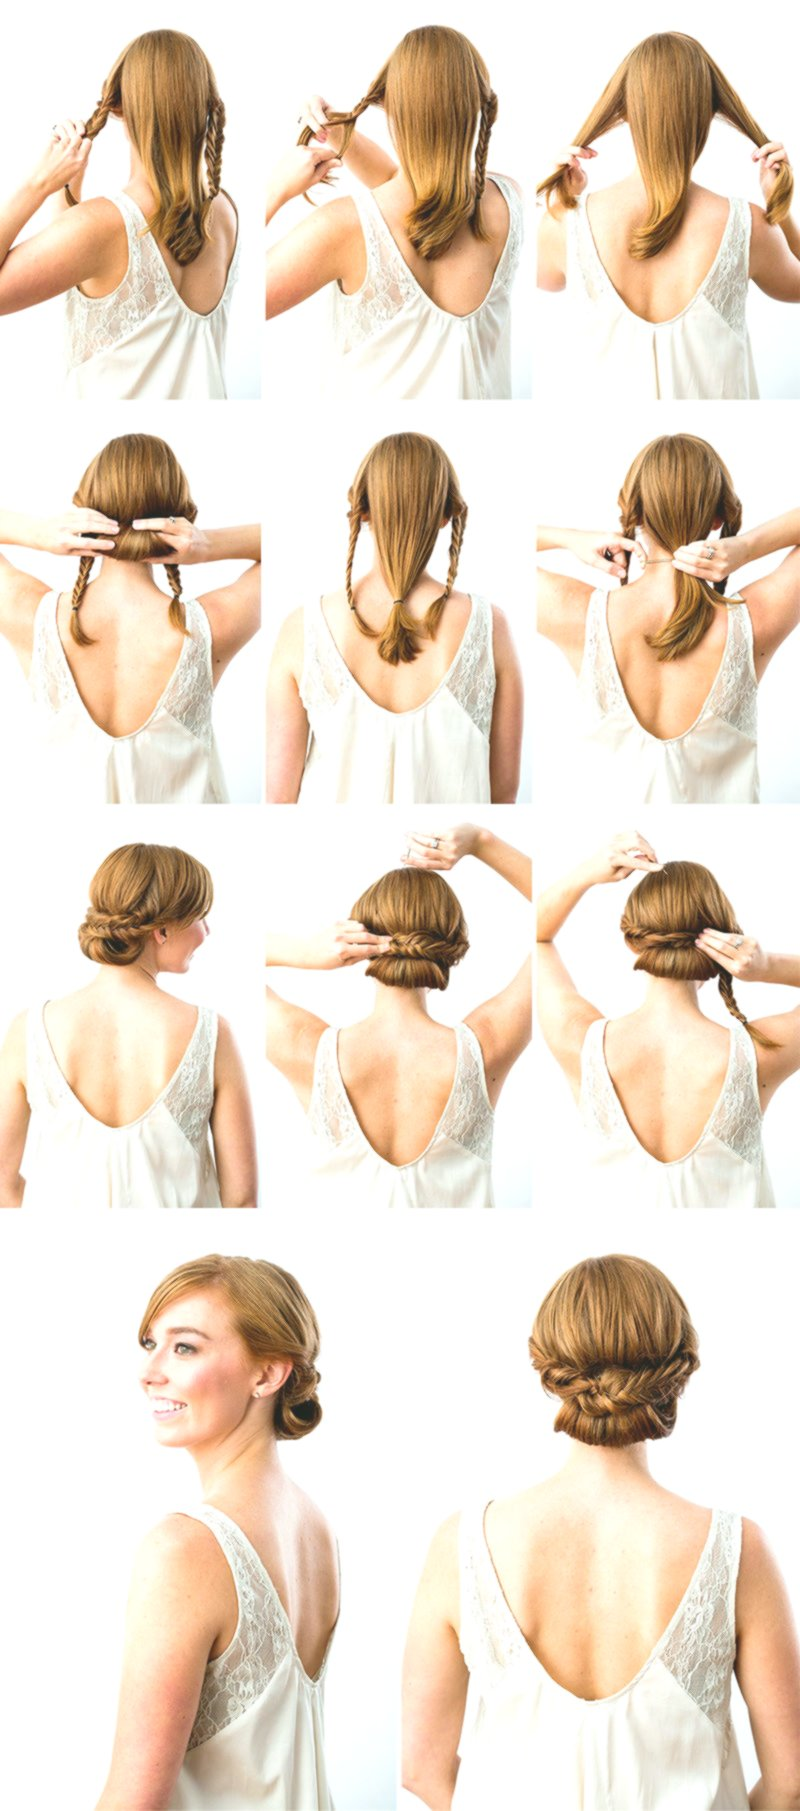 sensational cute simple hairstyling instruction architecture-Excellent Simple hairstyles instruction models